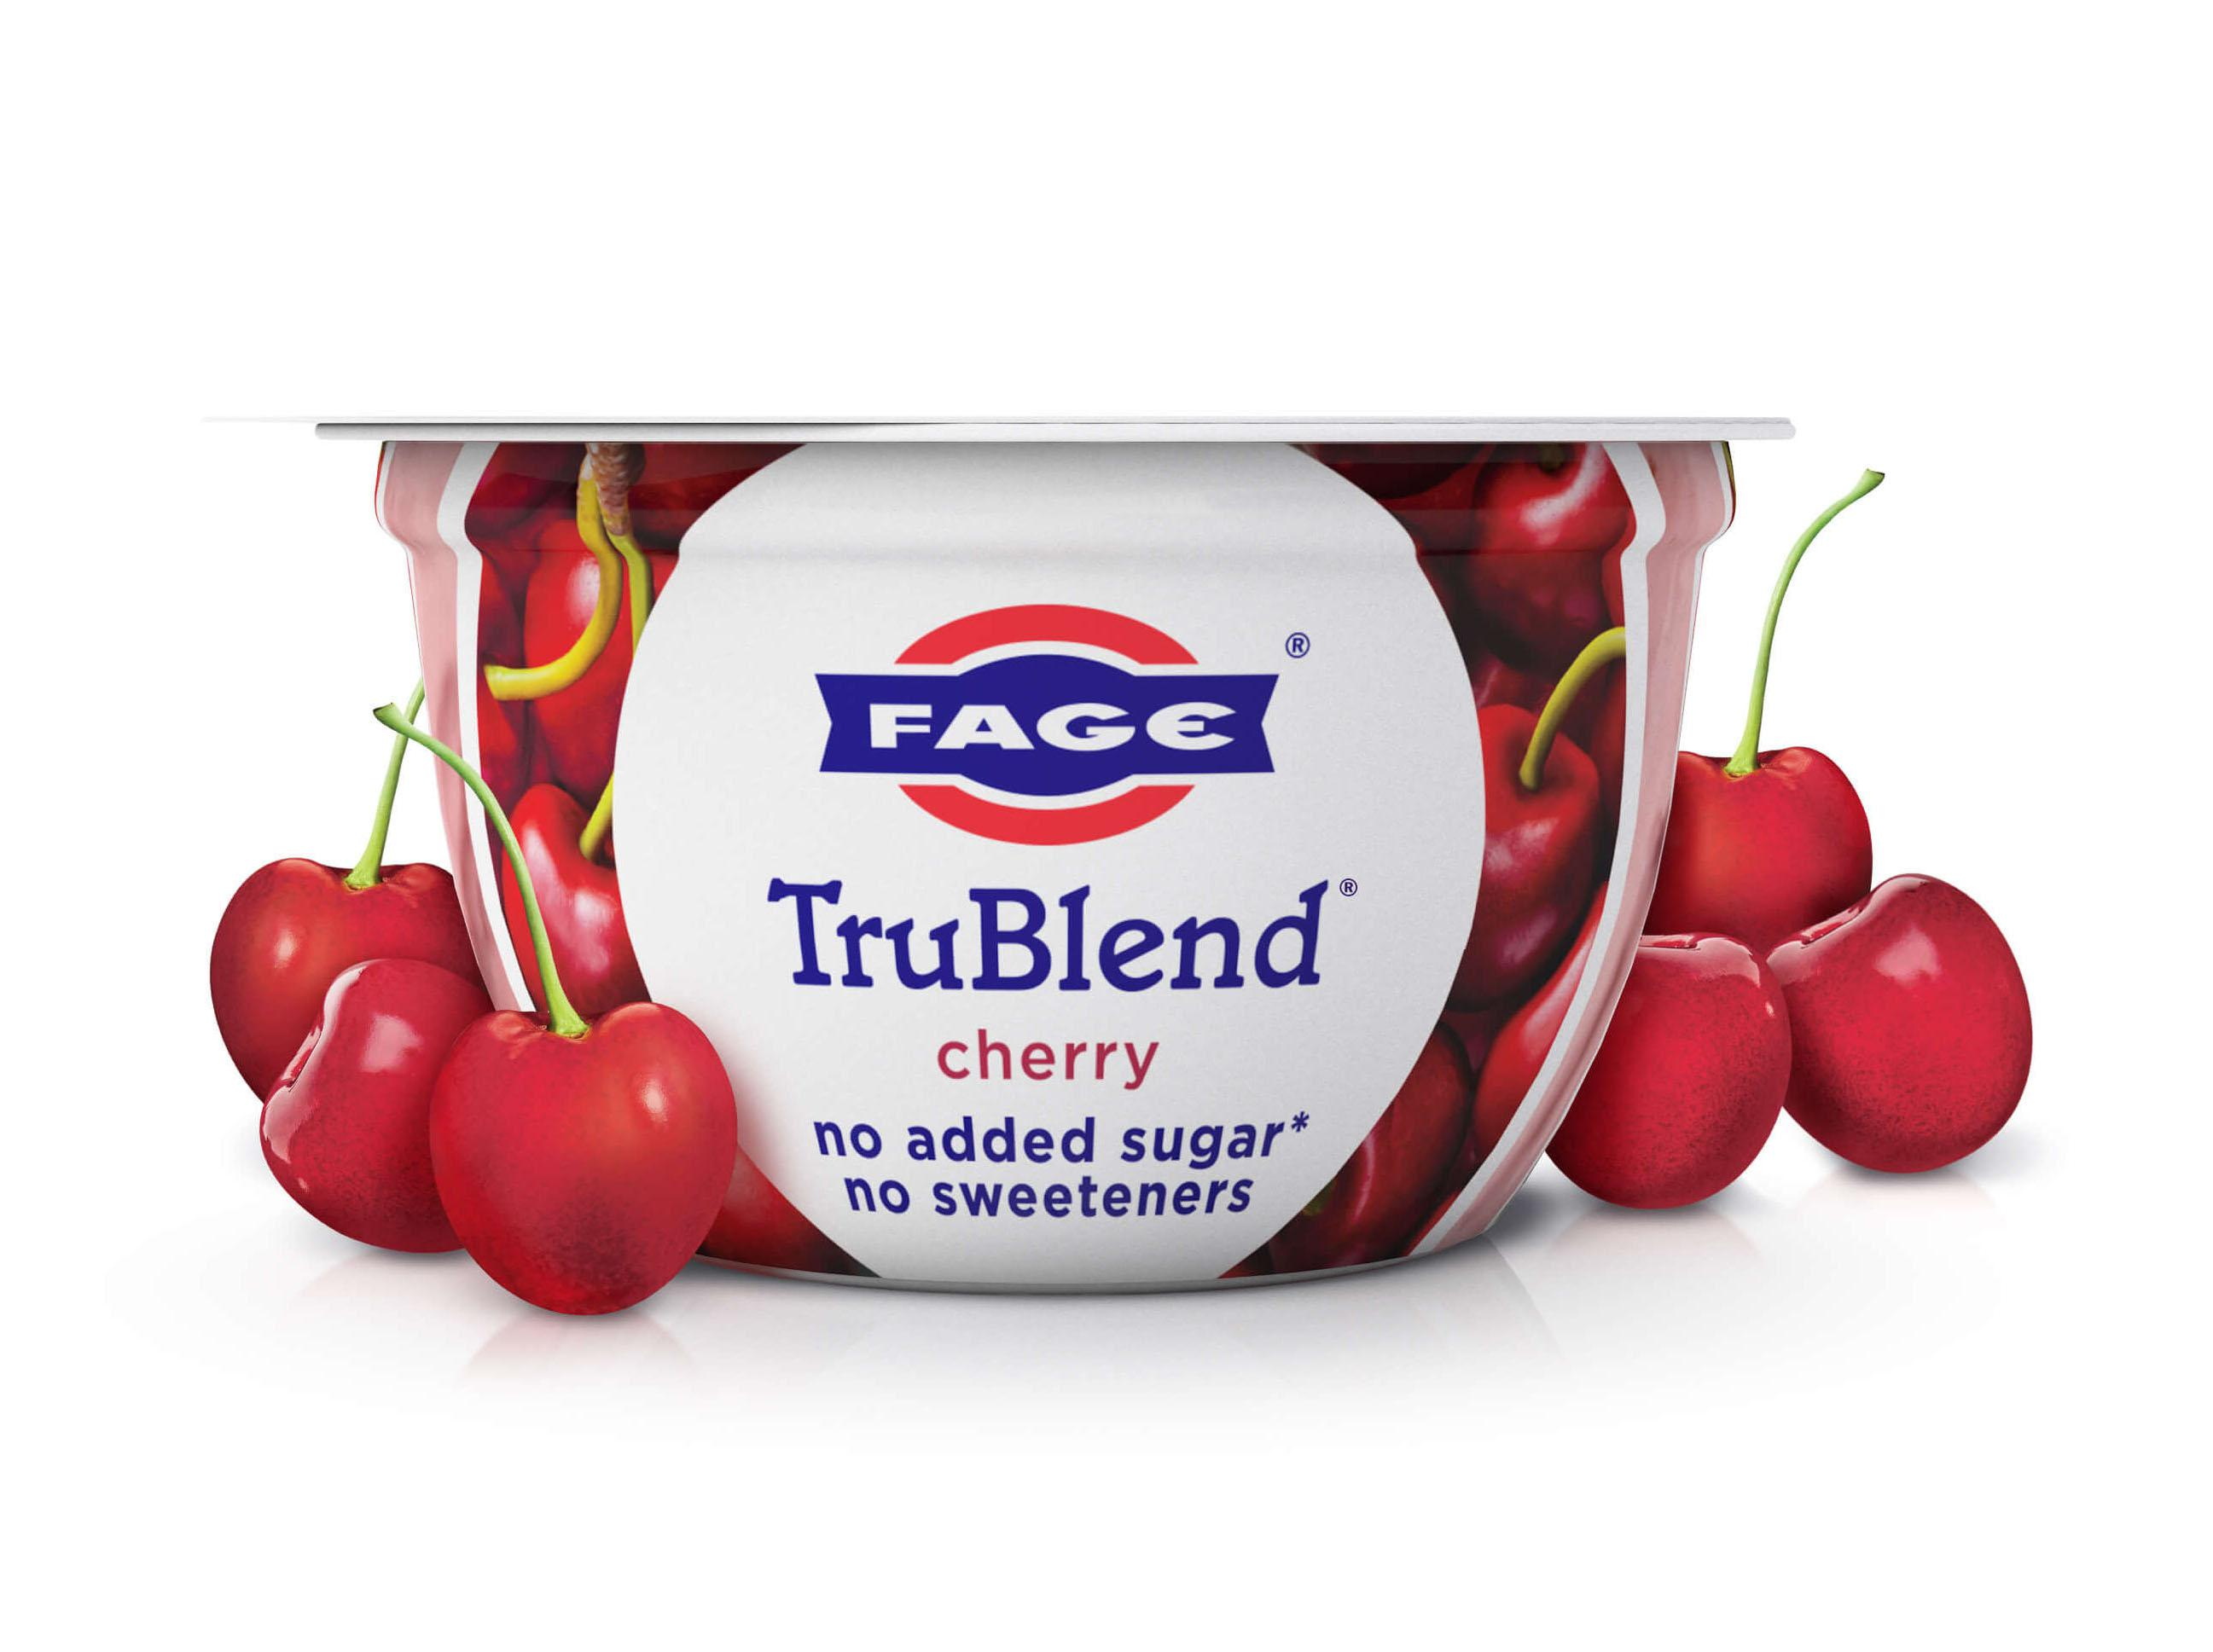 FAGE TruBlend Cherry